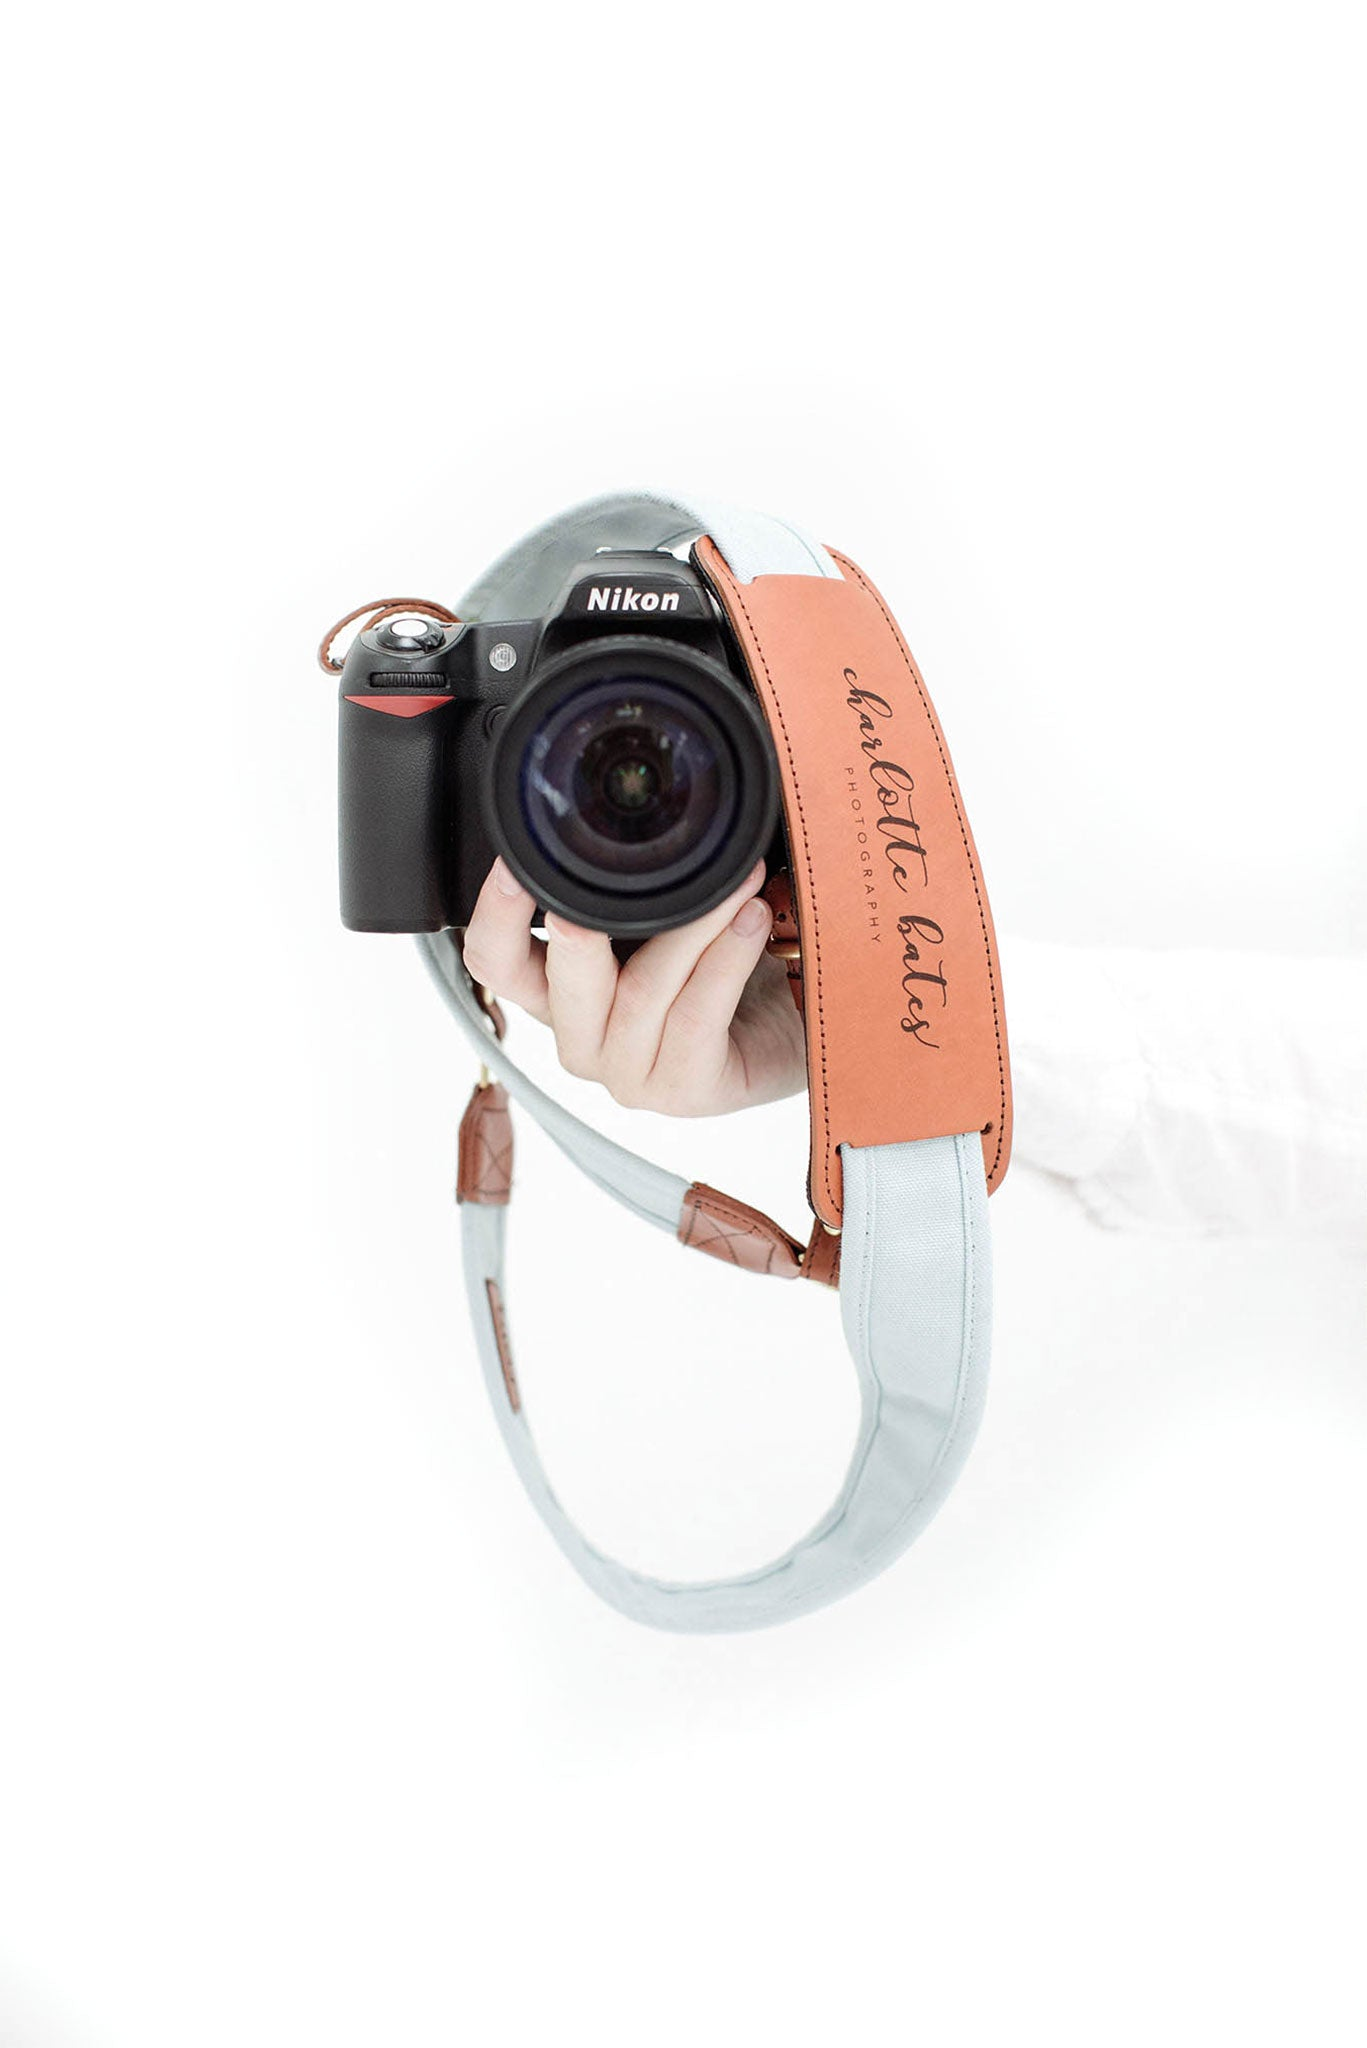 FOTO | Sky Fotostrap - a light blue canvas and genuine leather camera strap that can be personalized with a monogram or business logo, making it the perfect personalized gift!